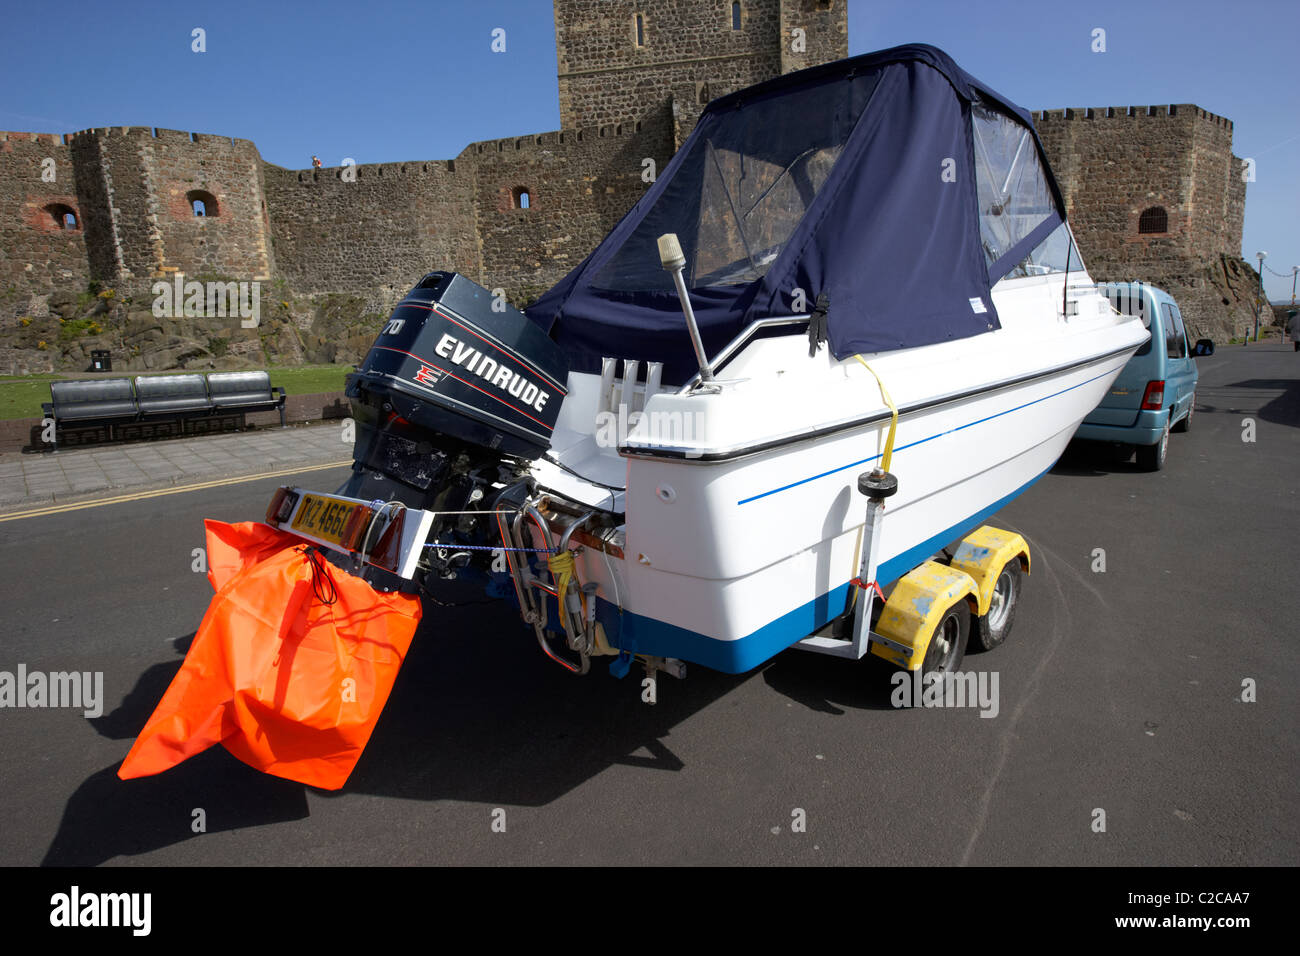 Outboard engines trailer light board and high visibility prop outboard engines trailer light board and high visibility prop covers on a boat being towed in the uk aloadofball Image collections